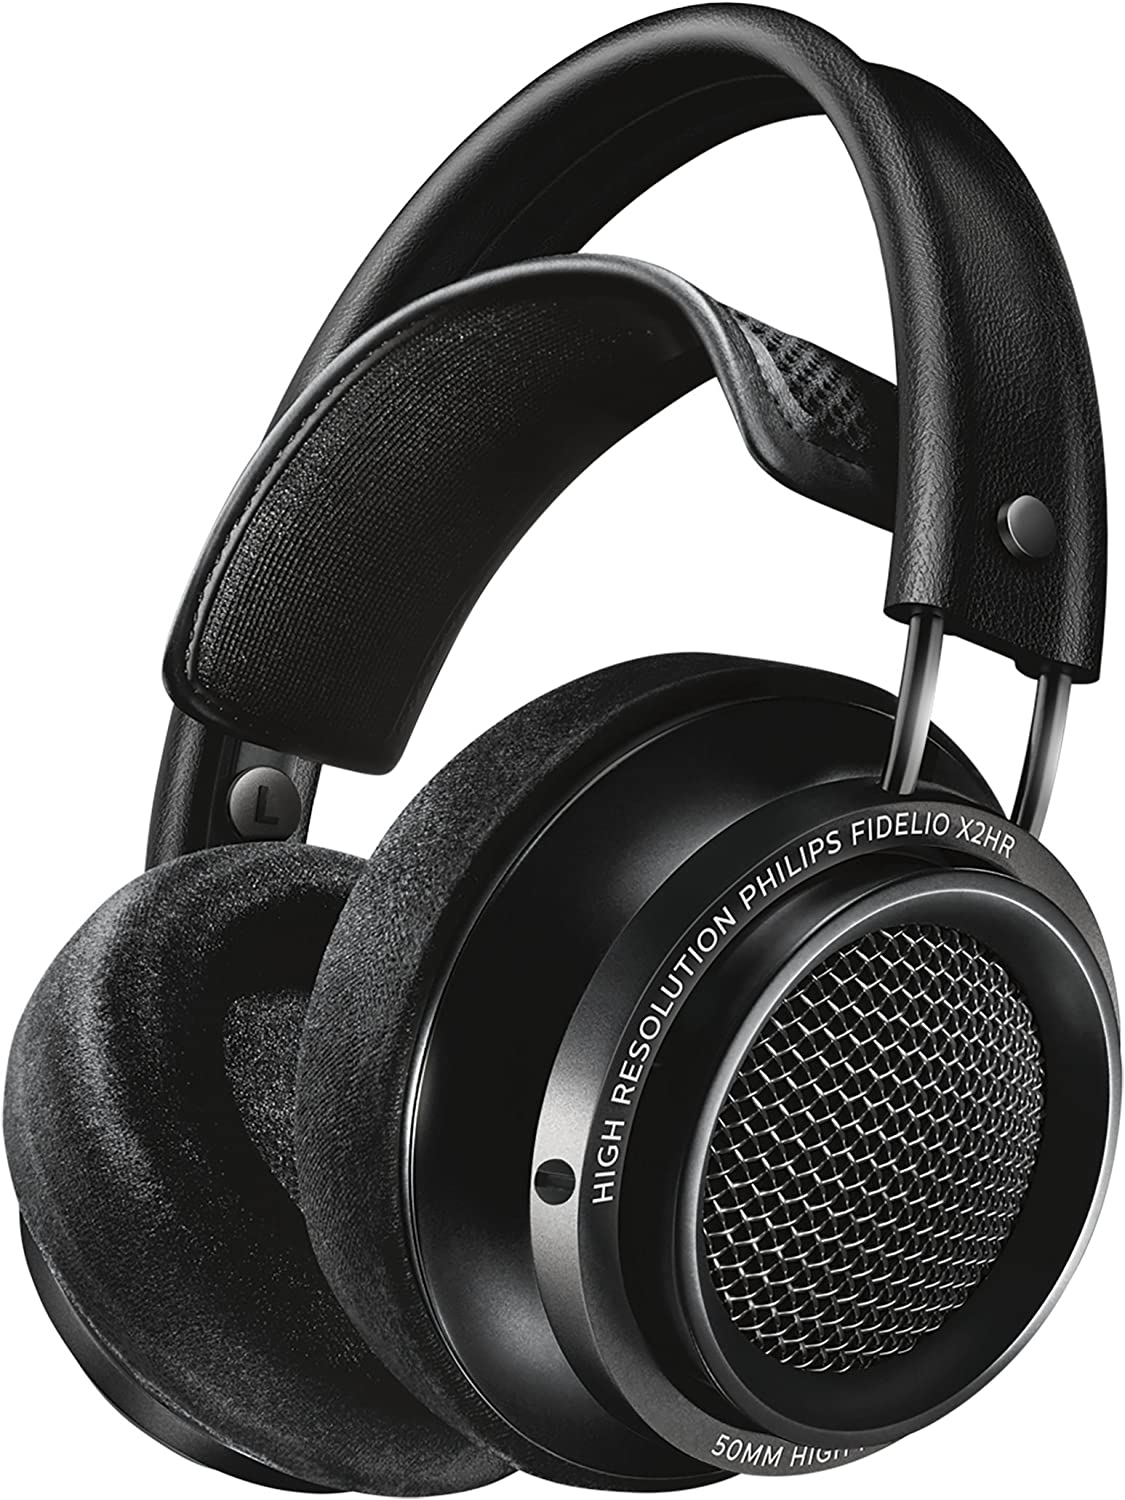 Philips X2HR Fidelio Over Ear Headphone, Black